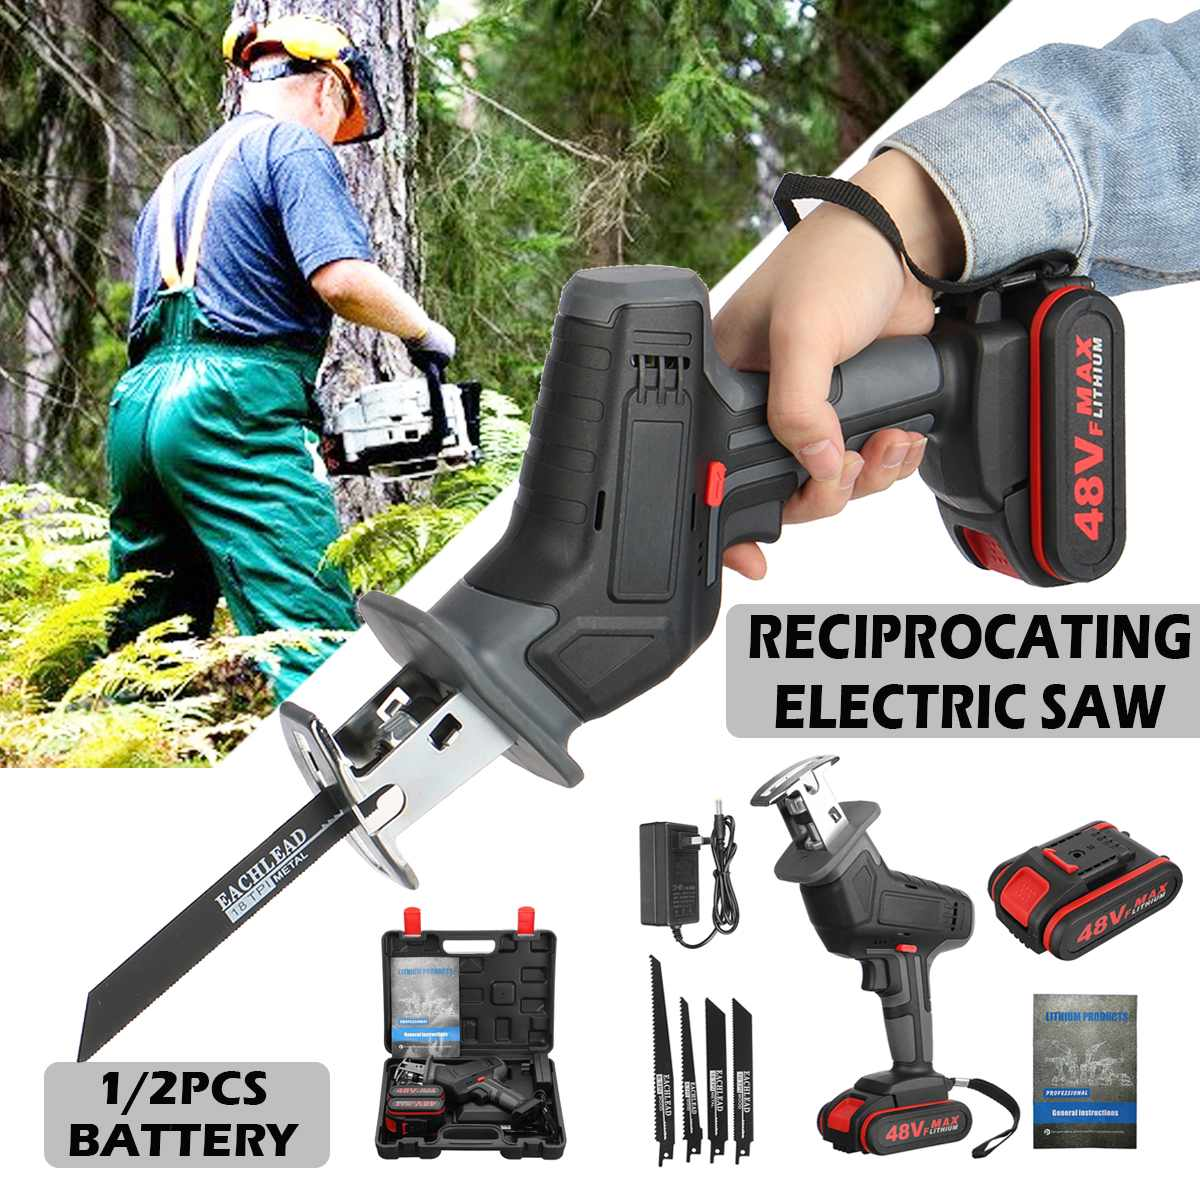 48V Cordless Lithium Battery Reciprocating Saw Wood/metal Cutting Saw Saber Saw Portable Electric Saw Rechargeable Power Tool